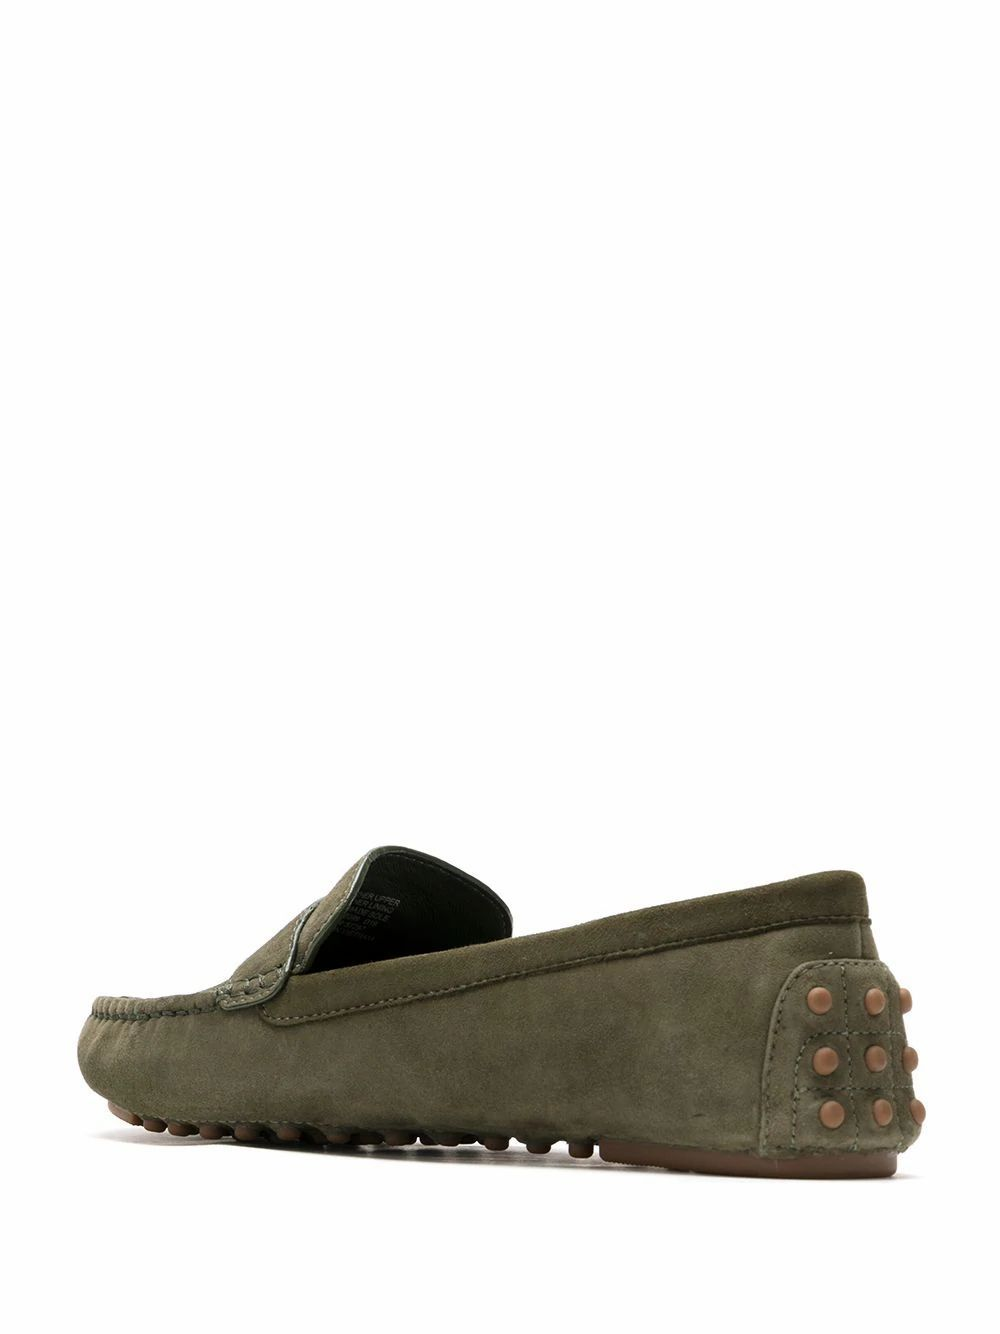 TORY BURCH WOMEN'S 57297306 GREEN SUEDE LOAFERS